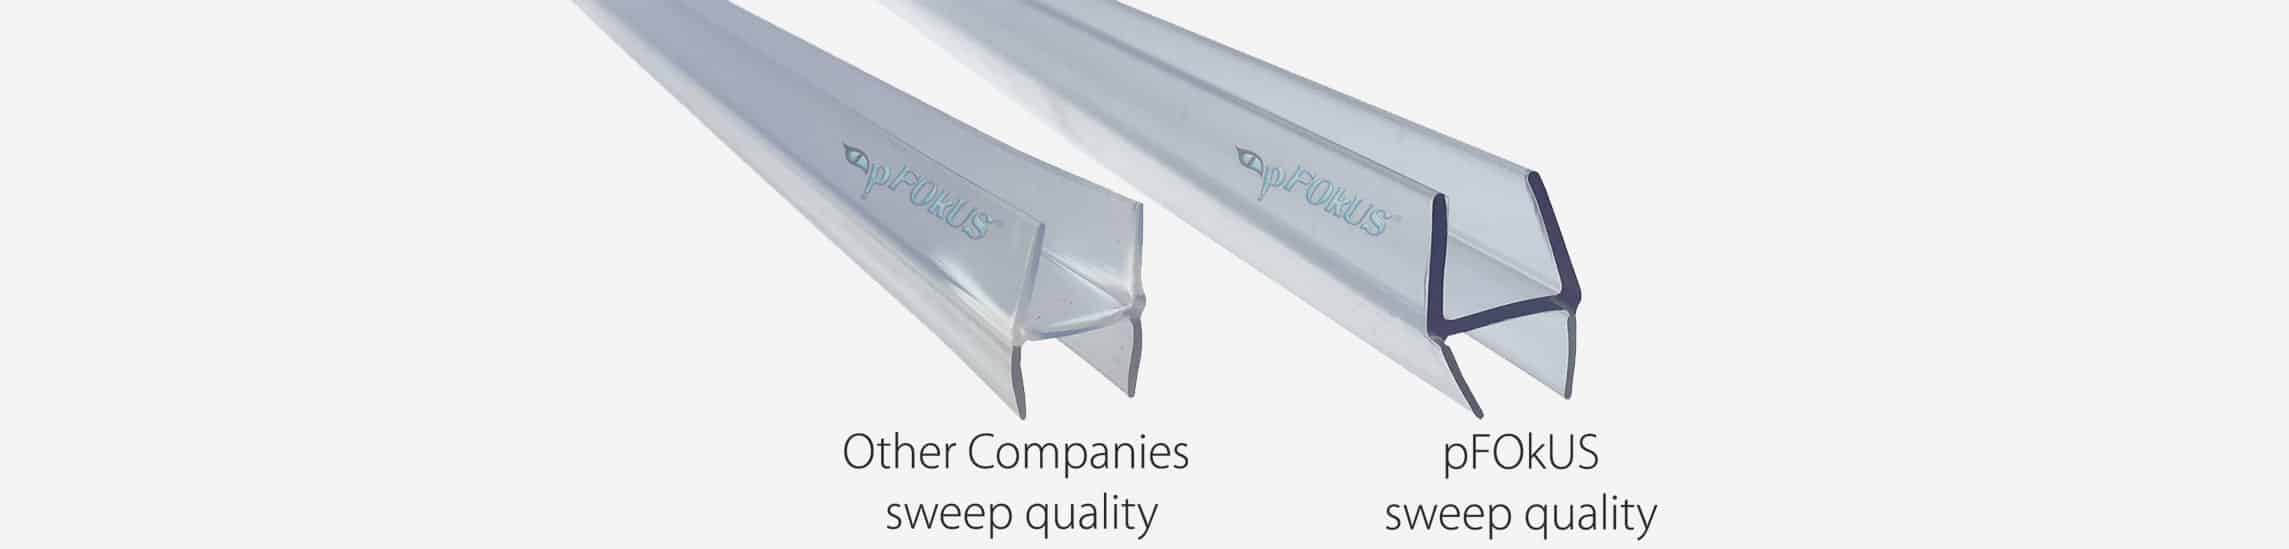 pFOkUS-sweep-quality-other-companies-sweep-quality